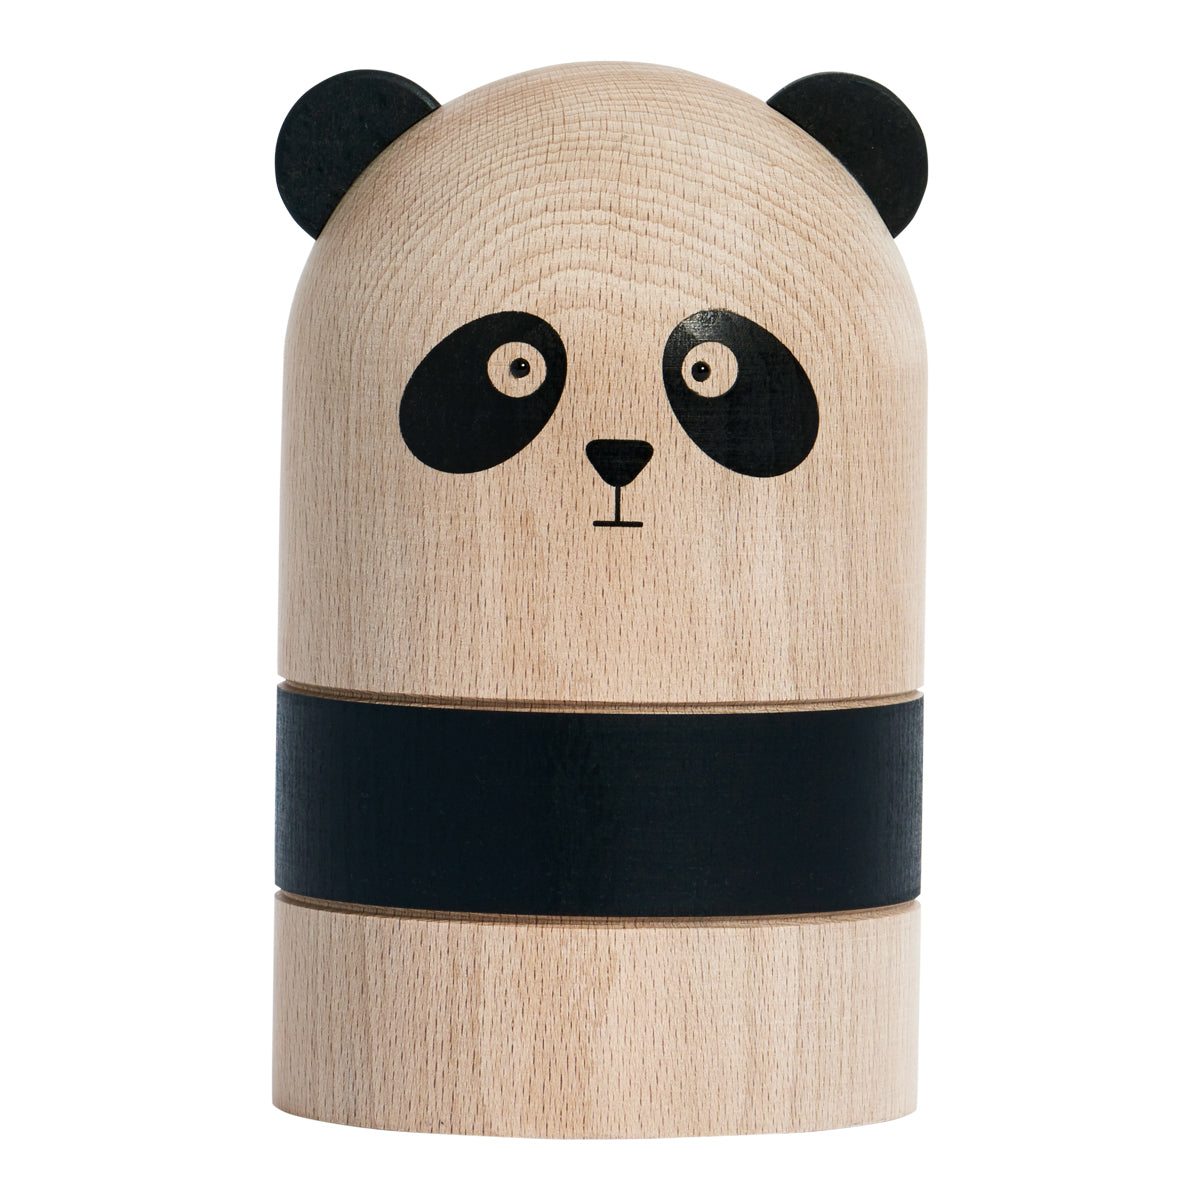 Oyoy Living Design Wooden natural Panda Money bank